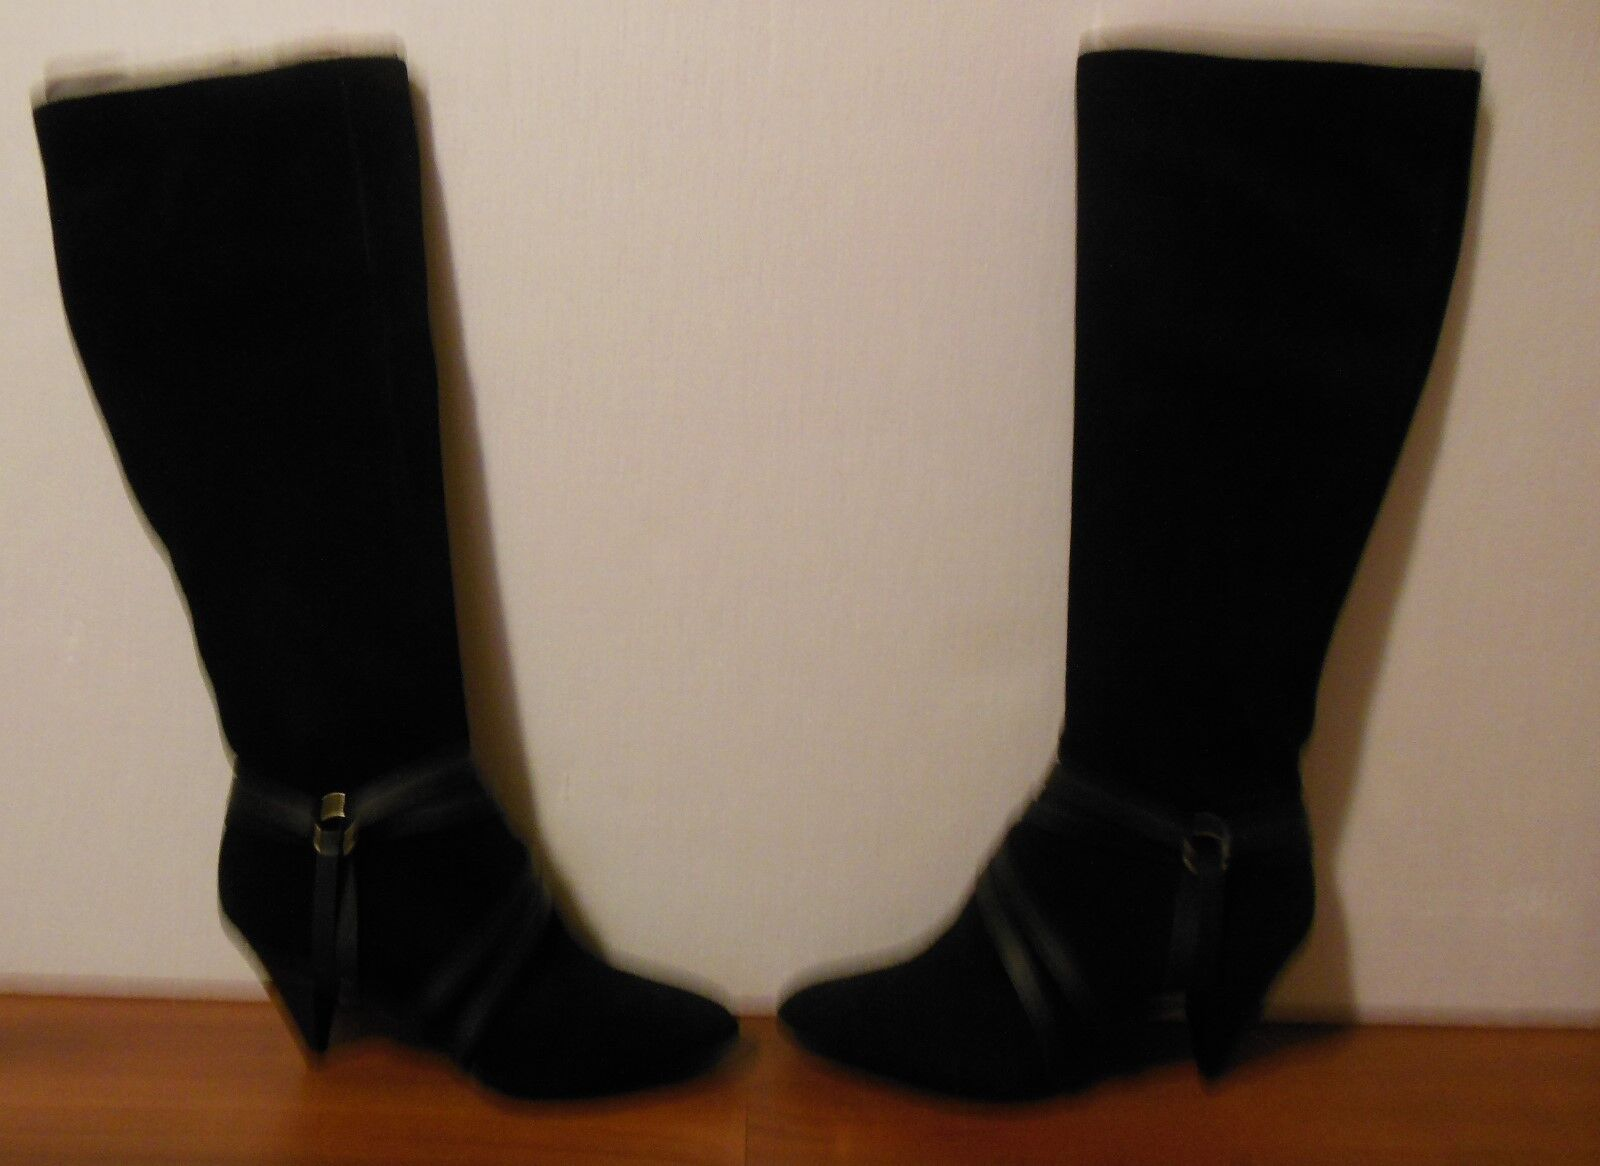 New DKNY Women's Knee High Suede Boots Sz 37 (US 6.5)